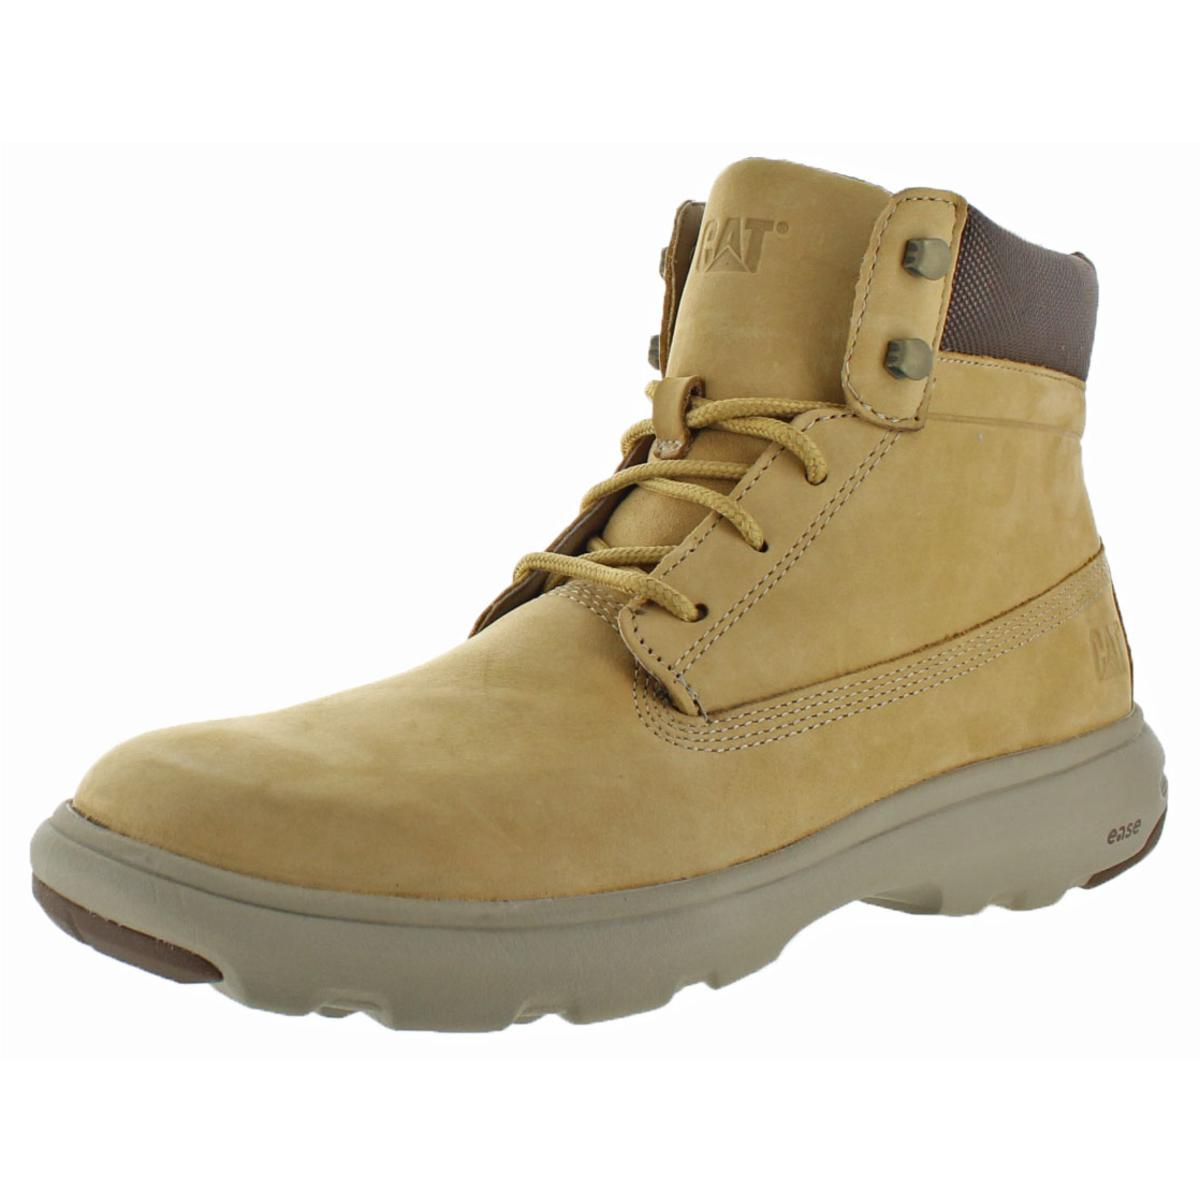 Dedicated Leather Safety Work Boots Lightweight Comfort Steel Toe Womens Caterpillar Tan Women's Shoes Work Boots & Shoes